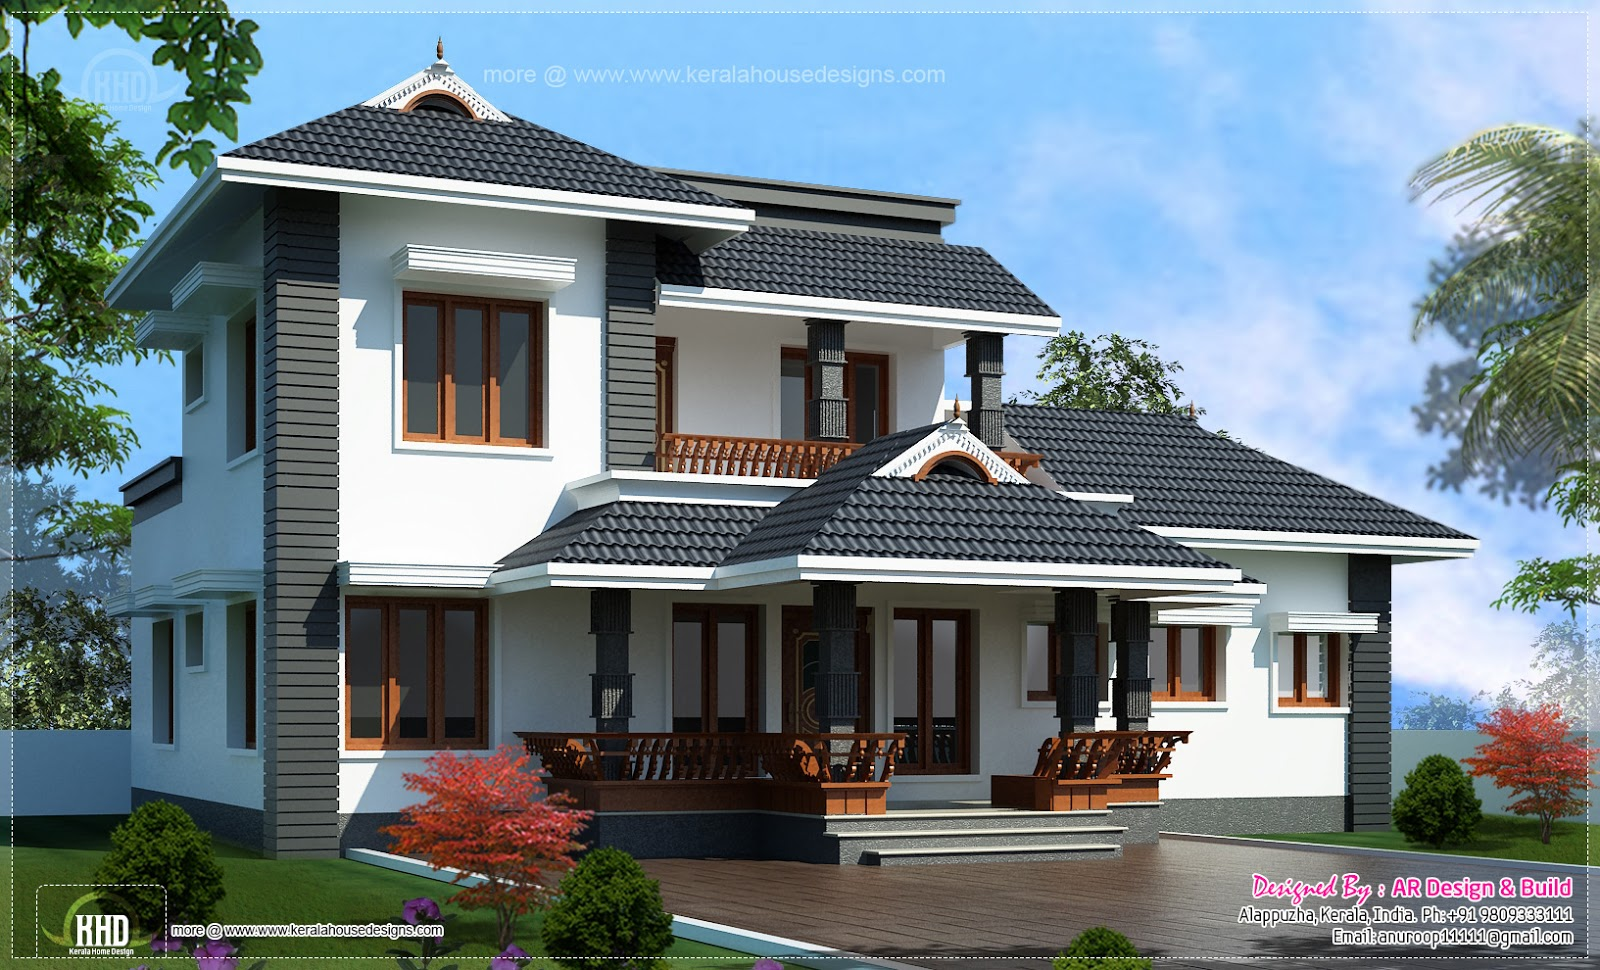 2000 4 bedroom sloping roof residence kerala for Best 2000 sq ft home design